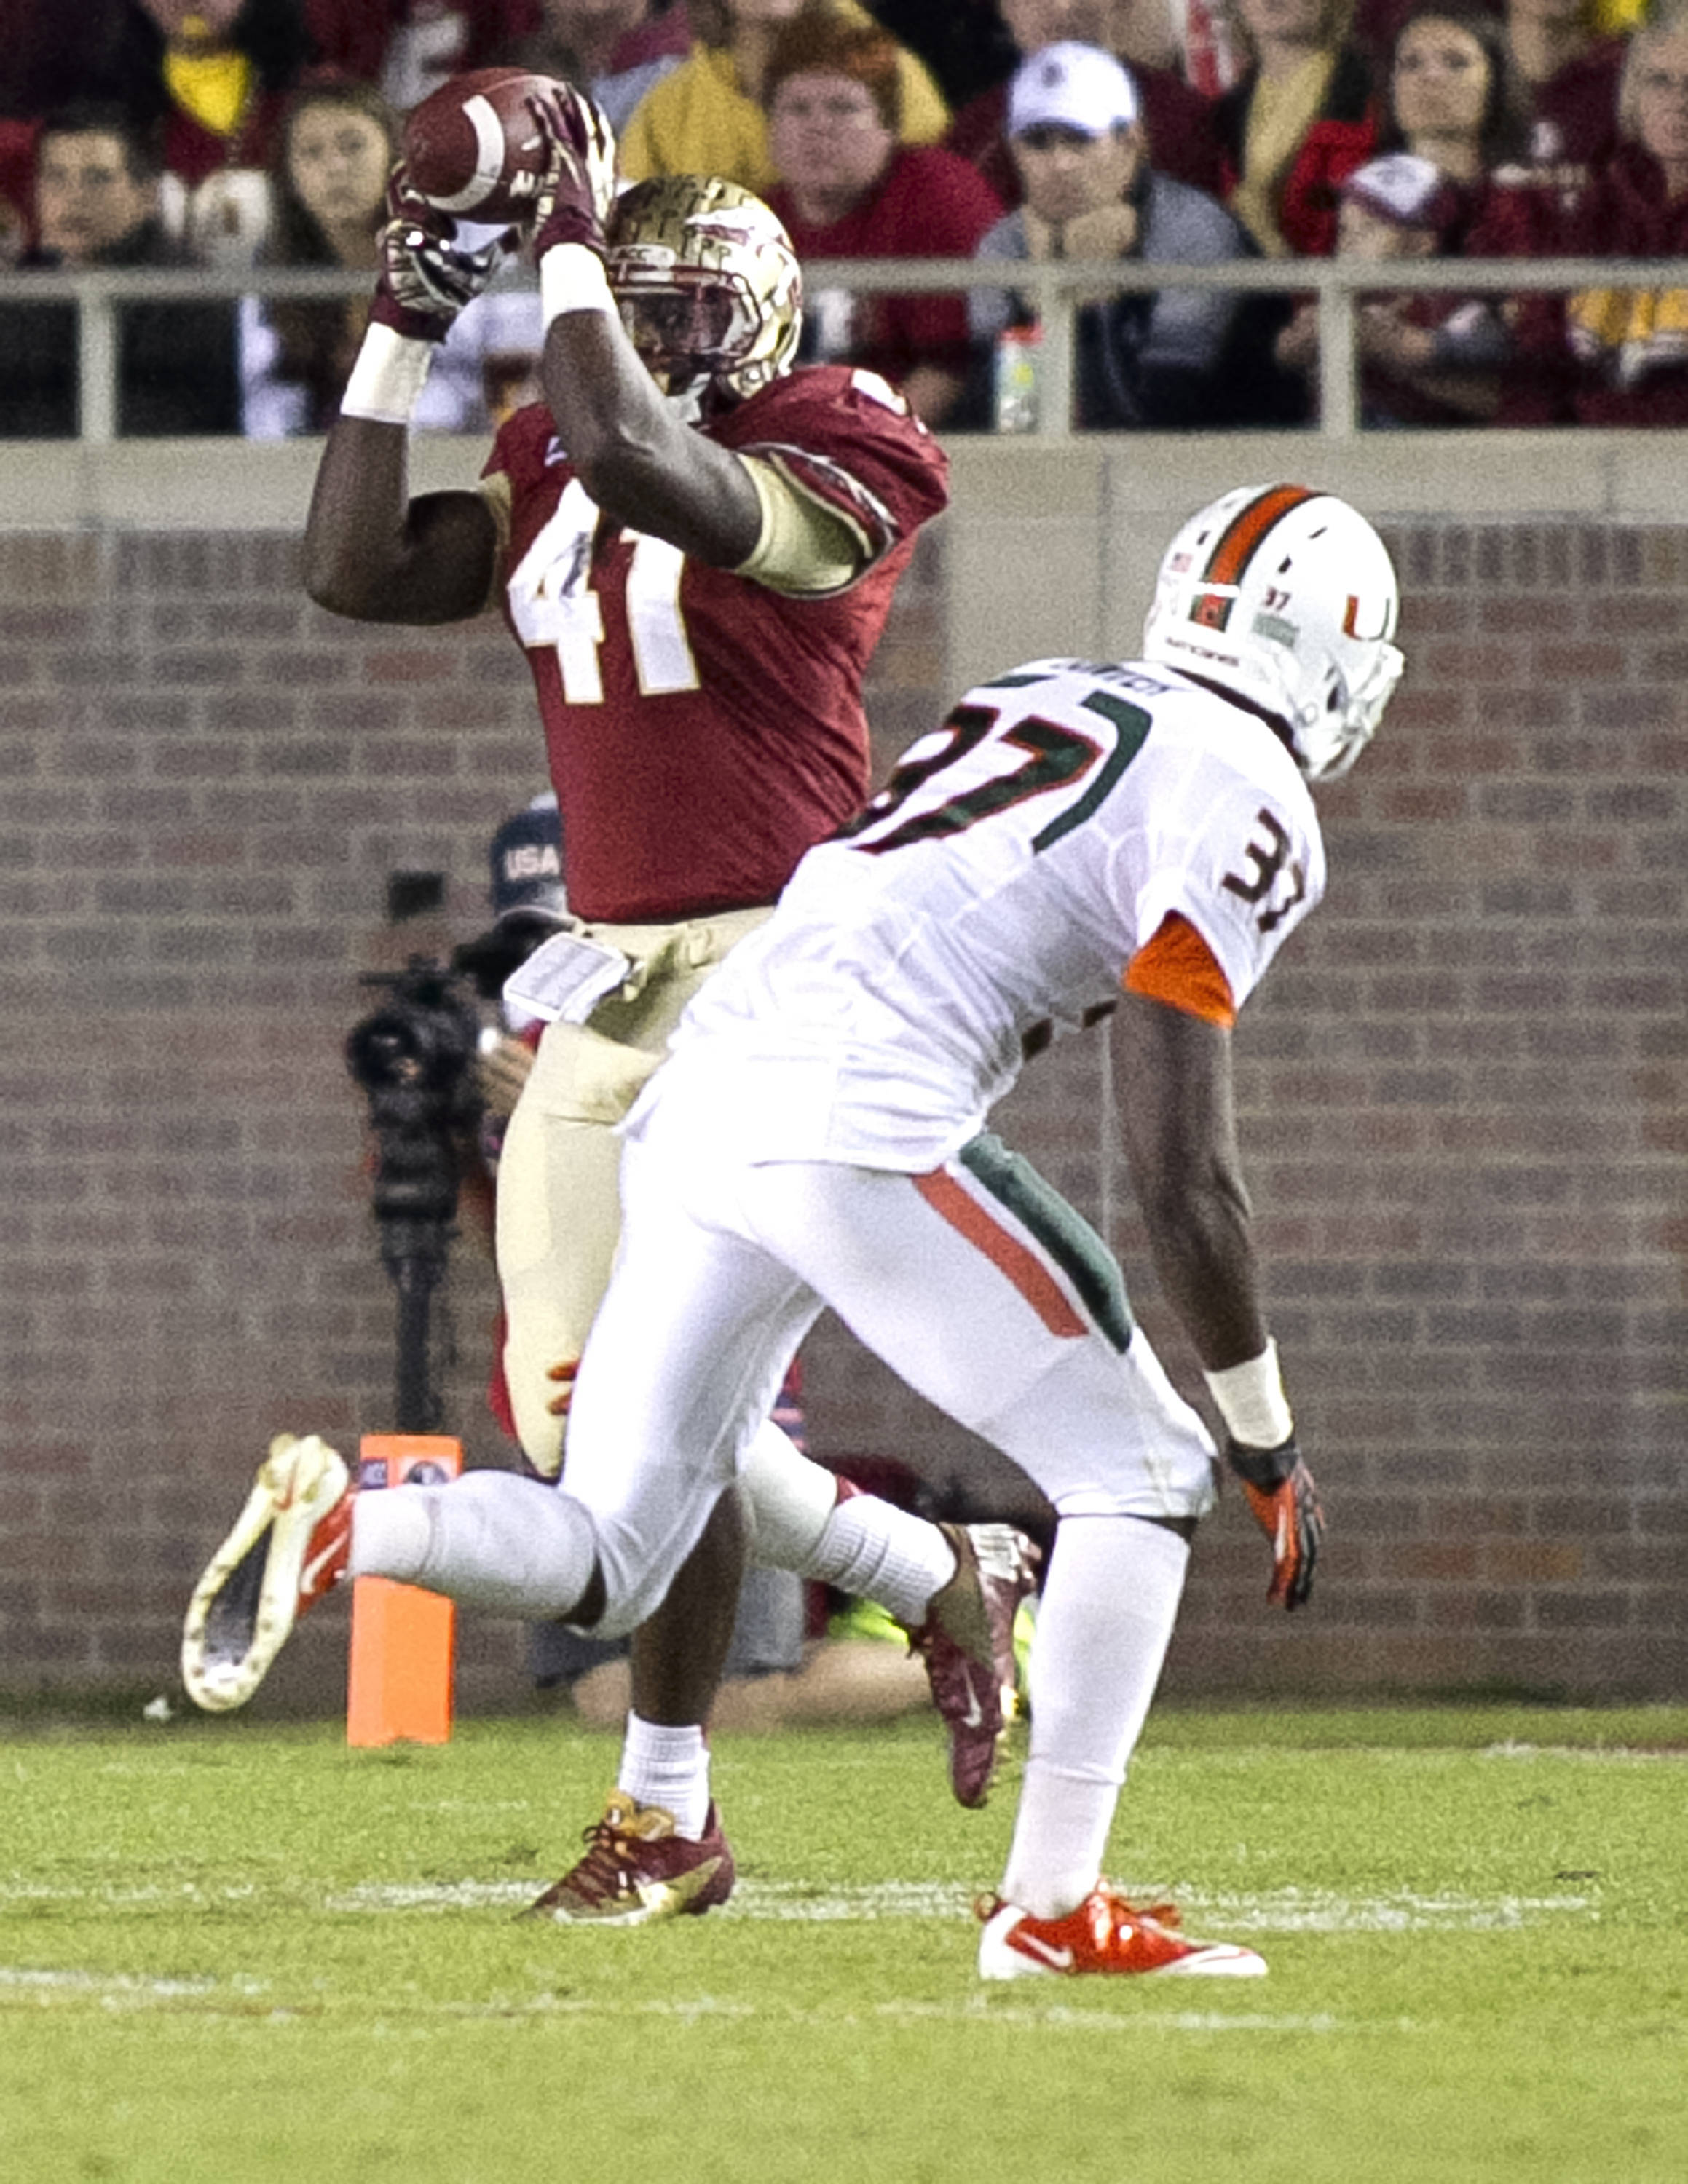 Chad Abram (41), FSU vs Miami,  11-2-13, (Photo by Steve Musco)